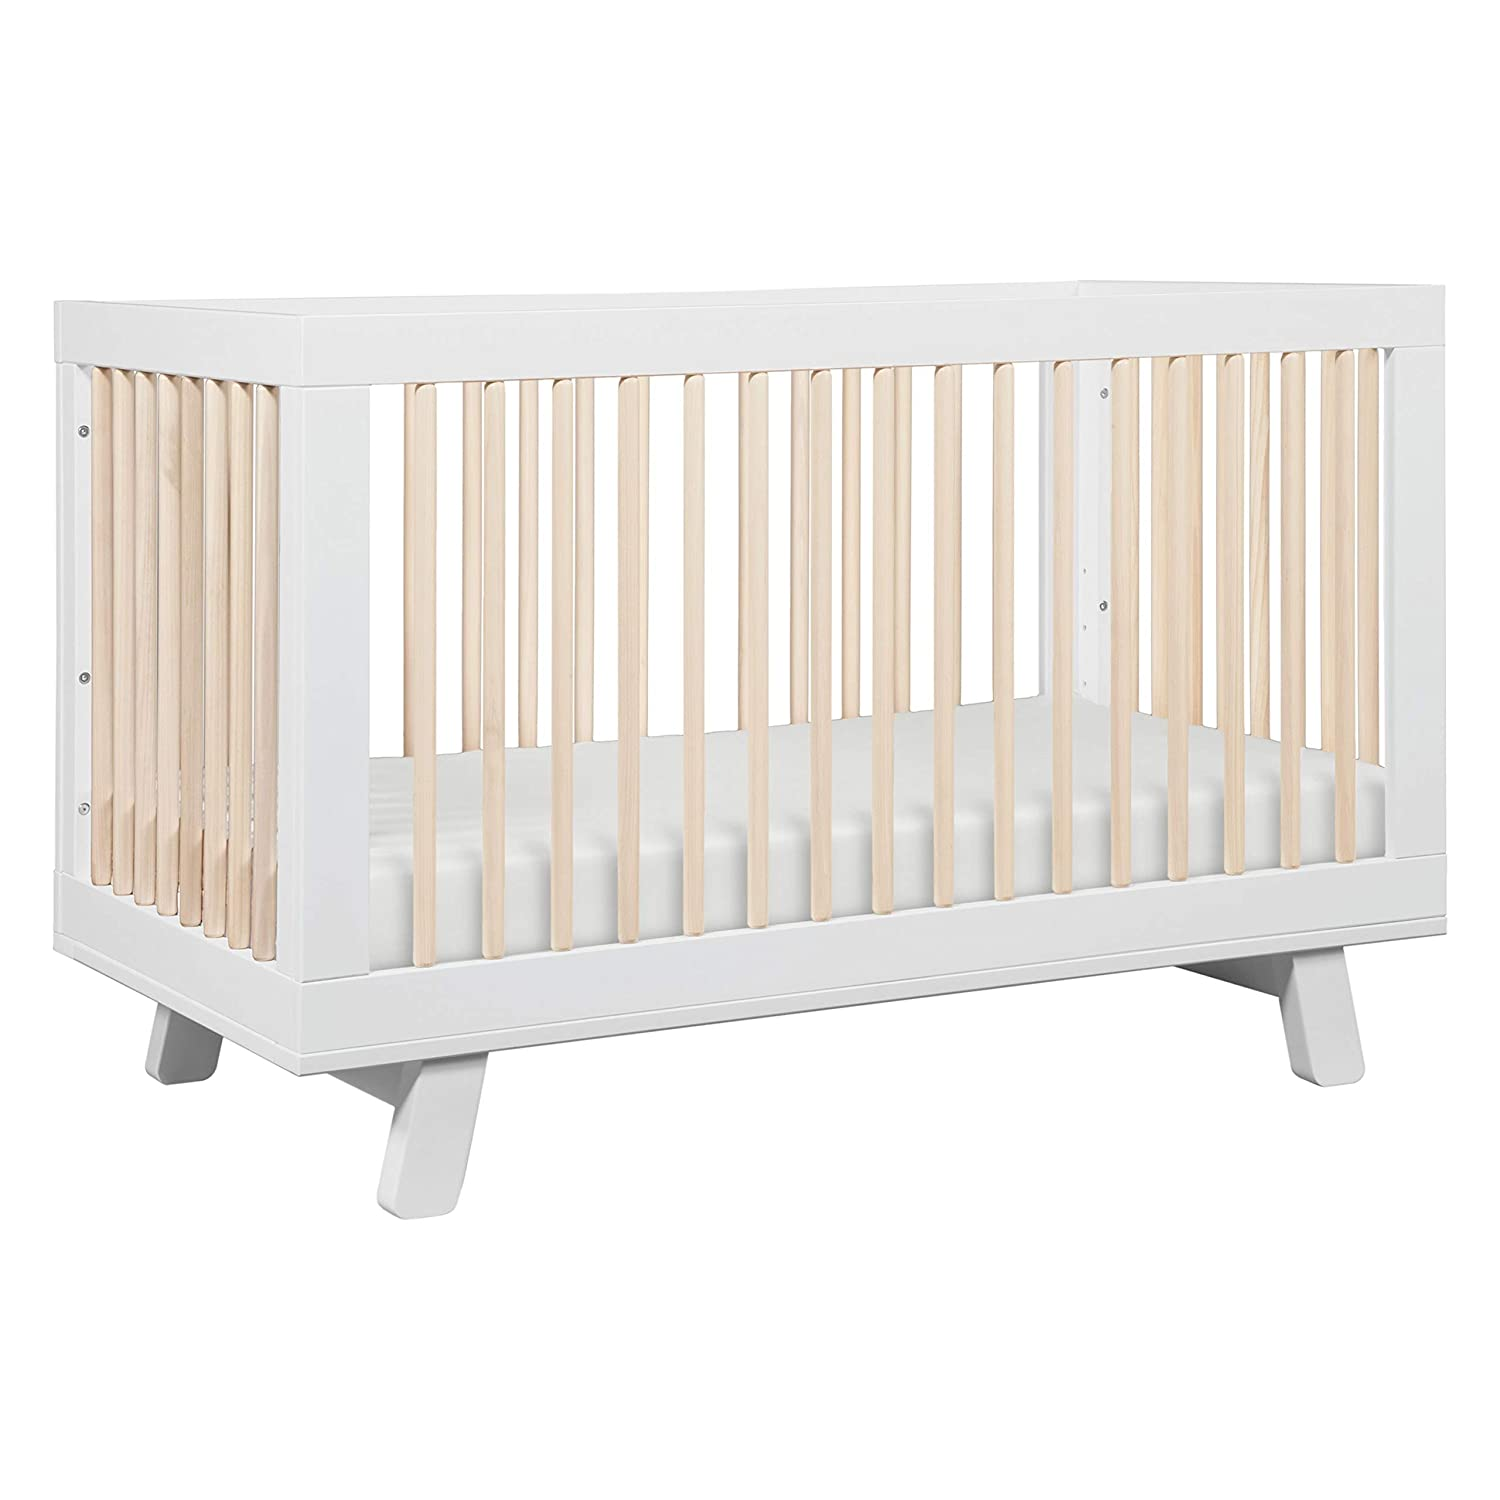 Babyletto Hudson 3-in-1 Convertible Crib with Toddler Bed Conversion Kit in White / Washed Natural, Greenguard Gold Certified